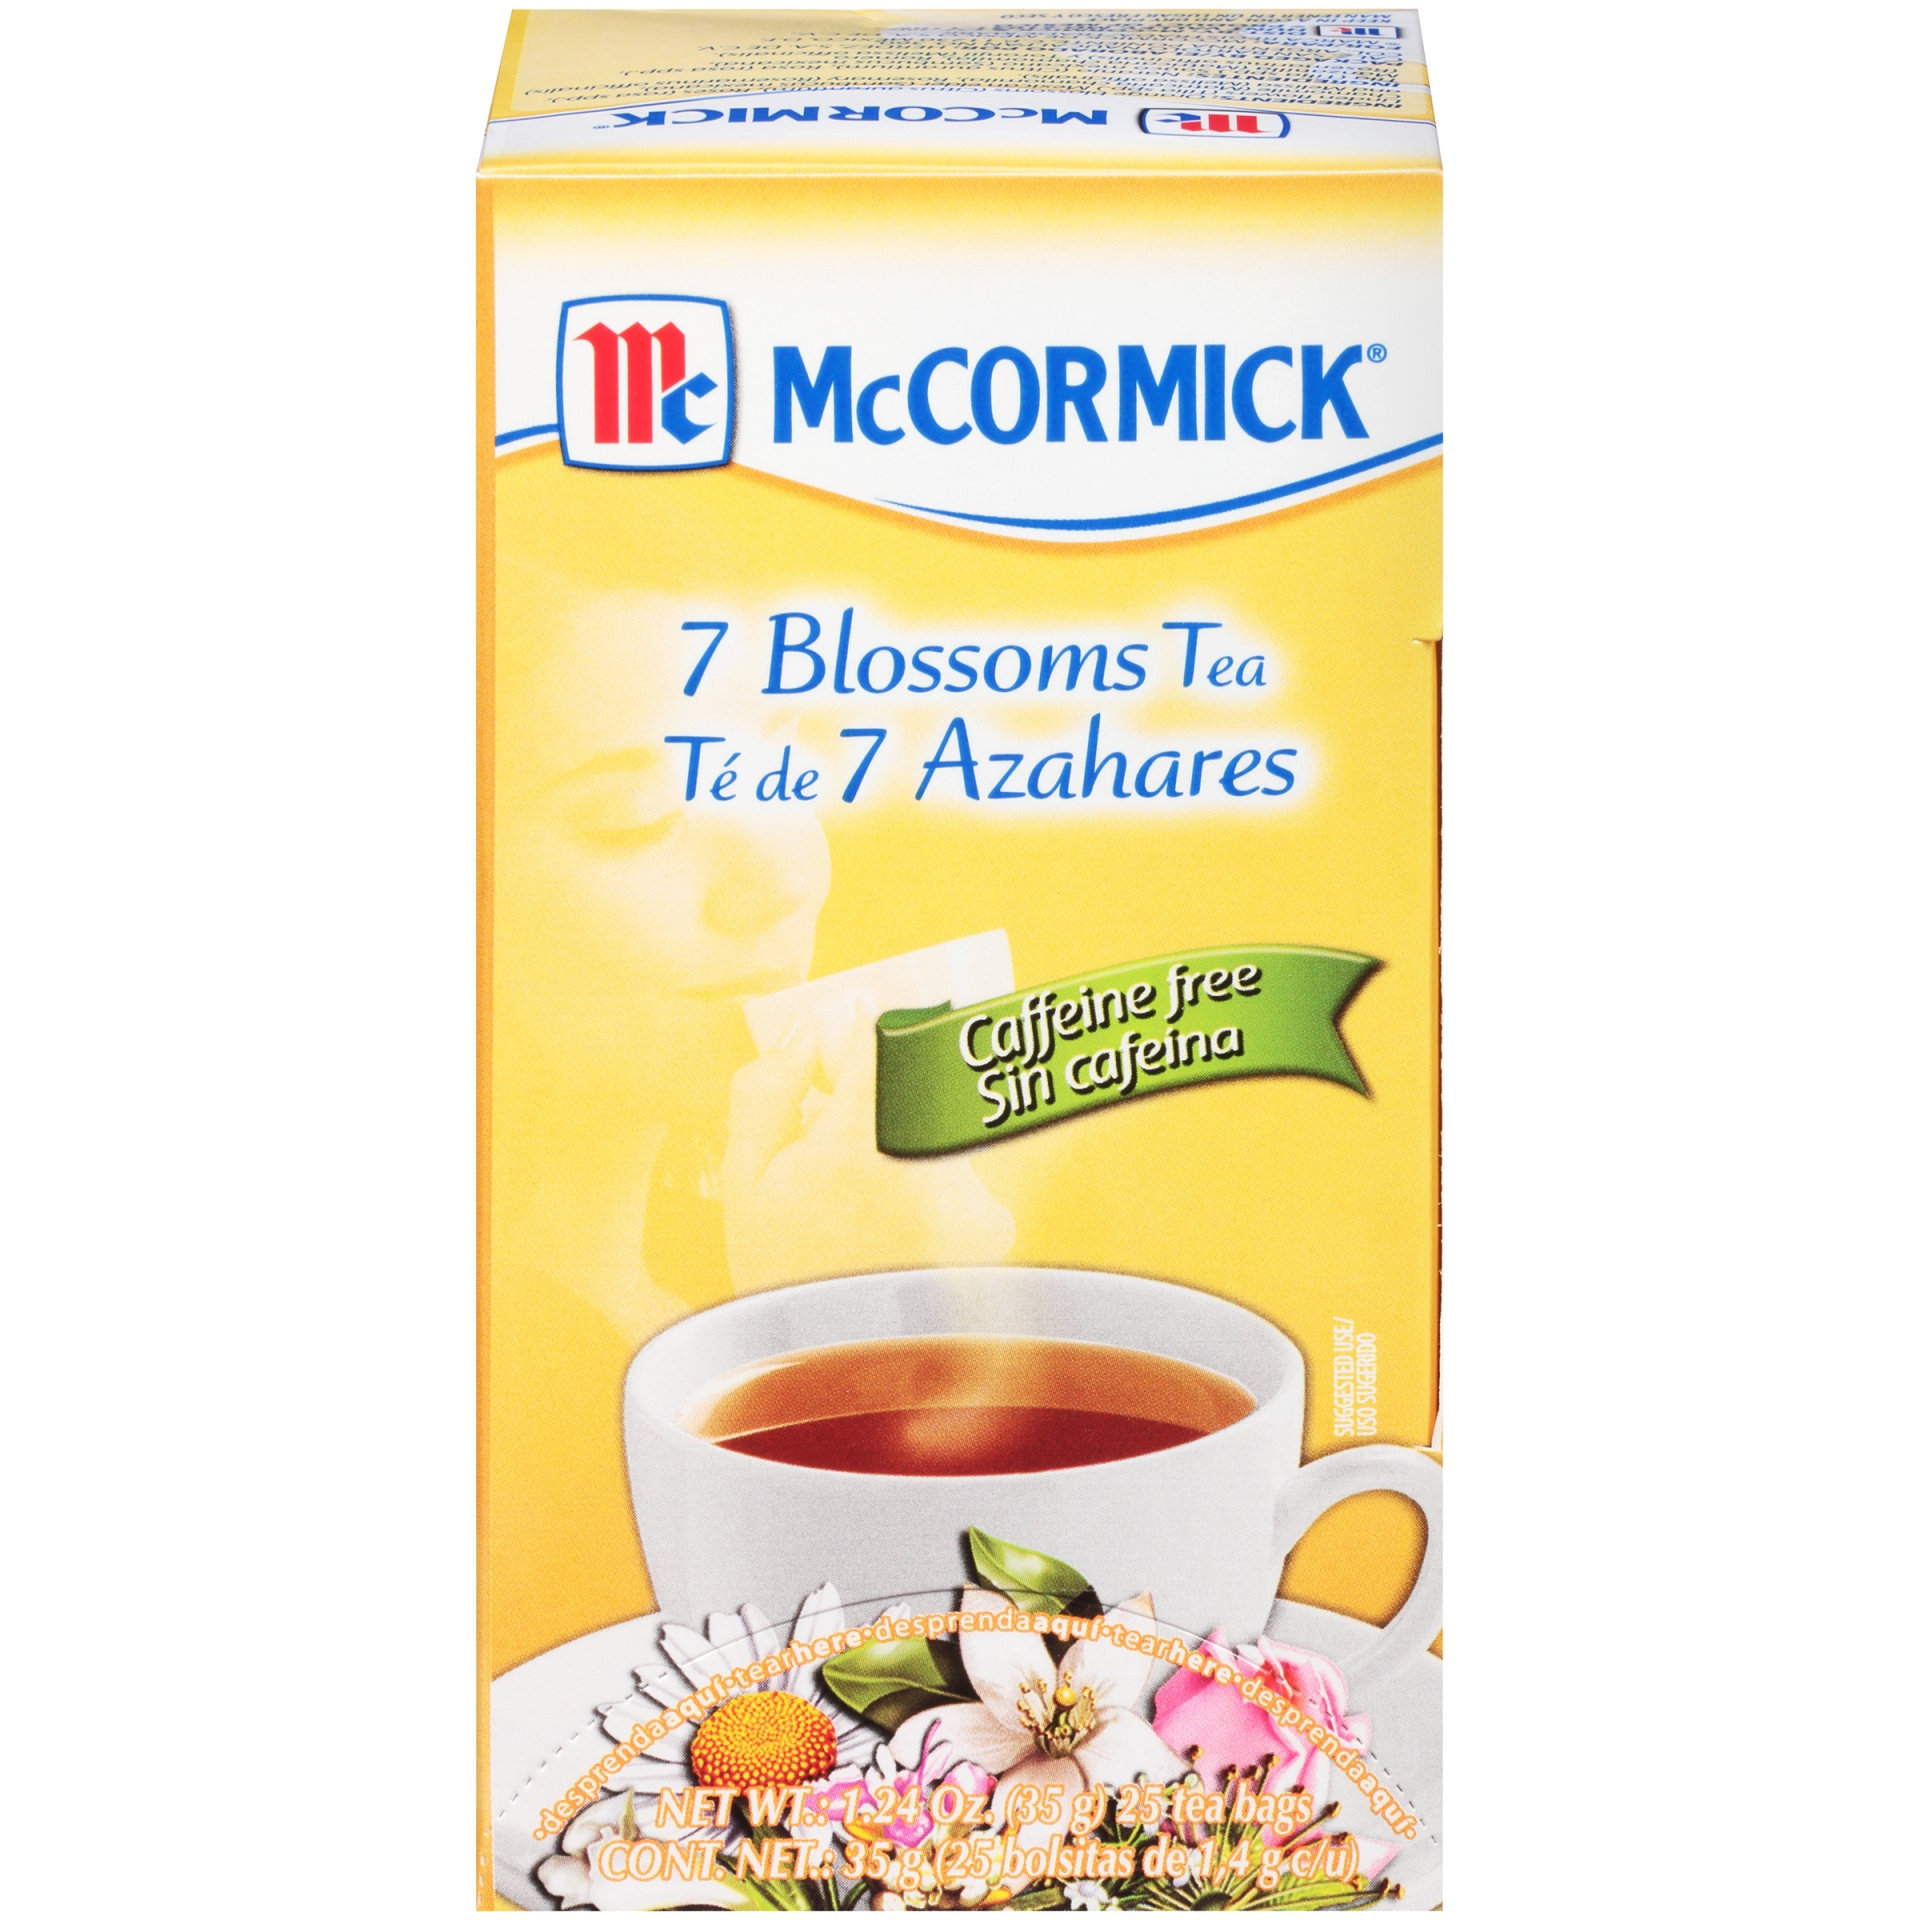 slide 1 of 7, Mccormick 7 Blossoms Tea Caffeine Free,